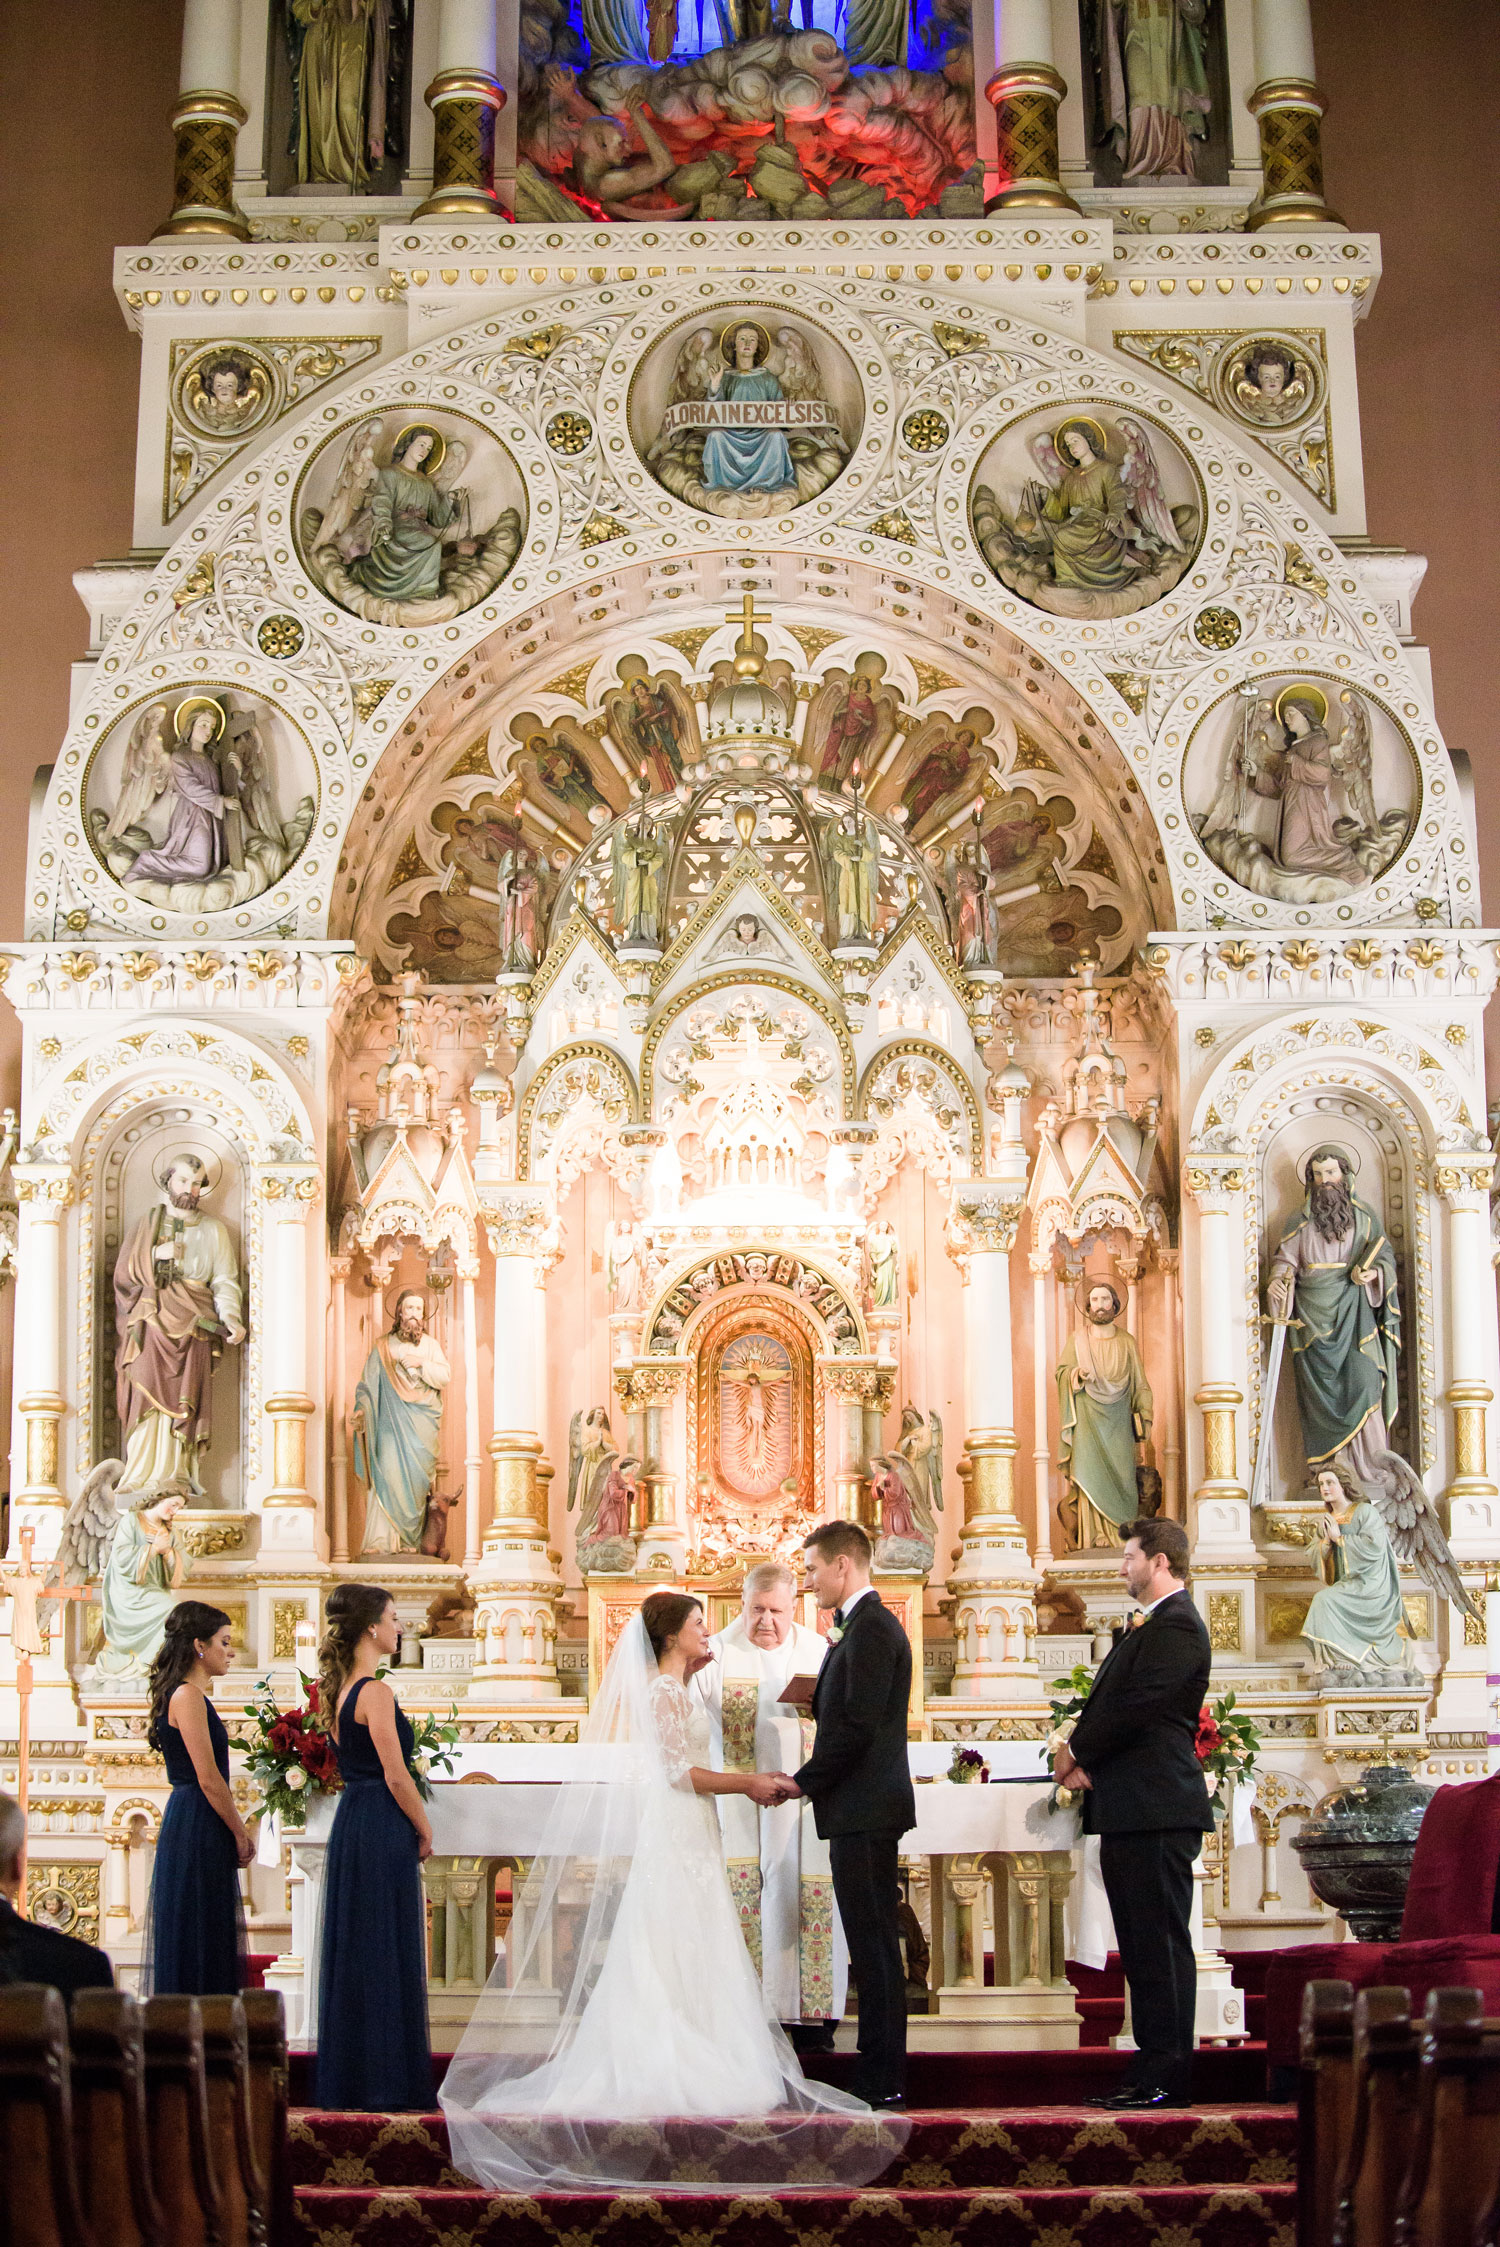 Catholic wedding ceremony winter celebration beautiful church venue